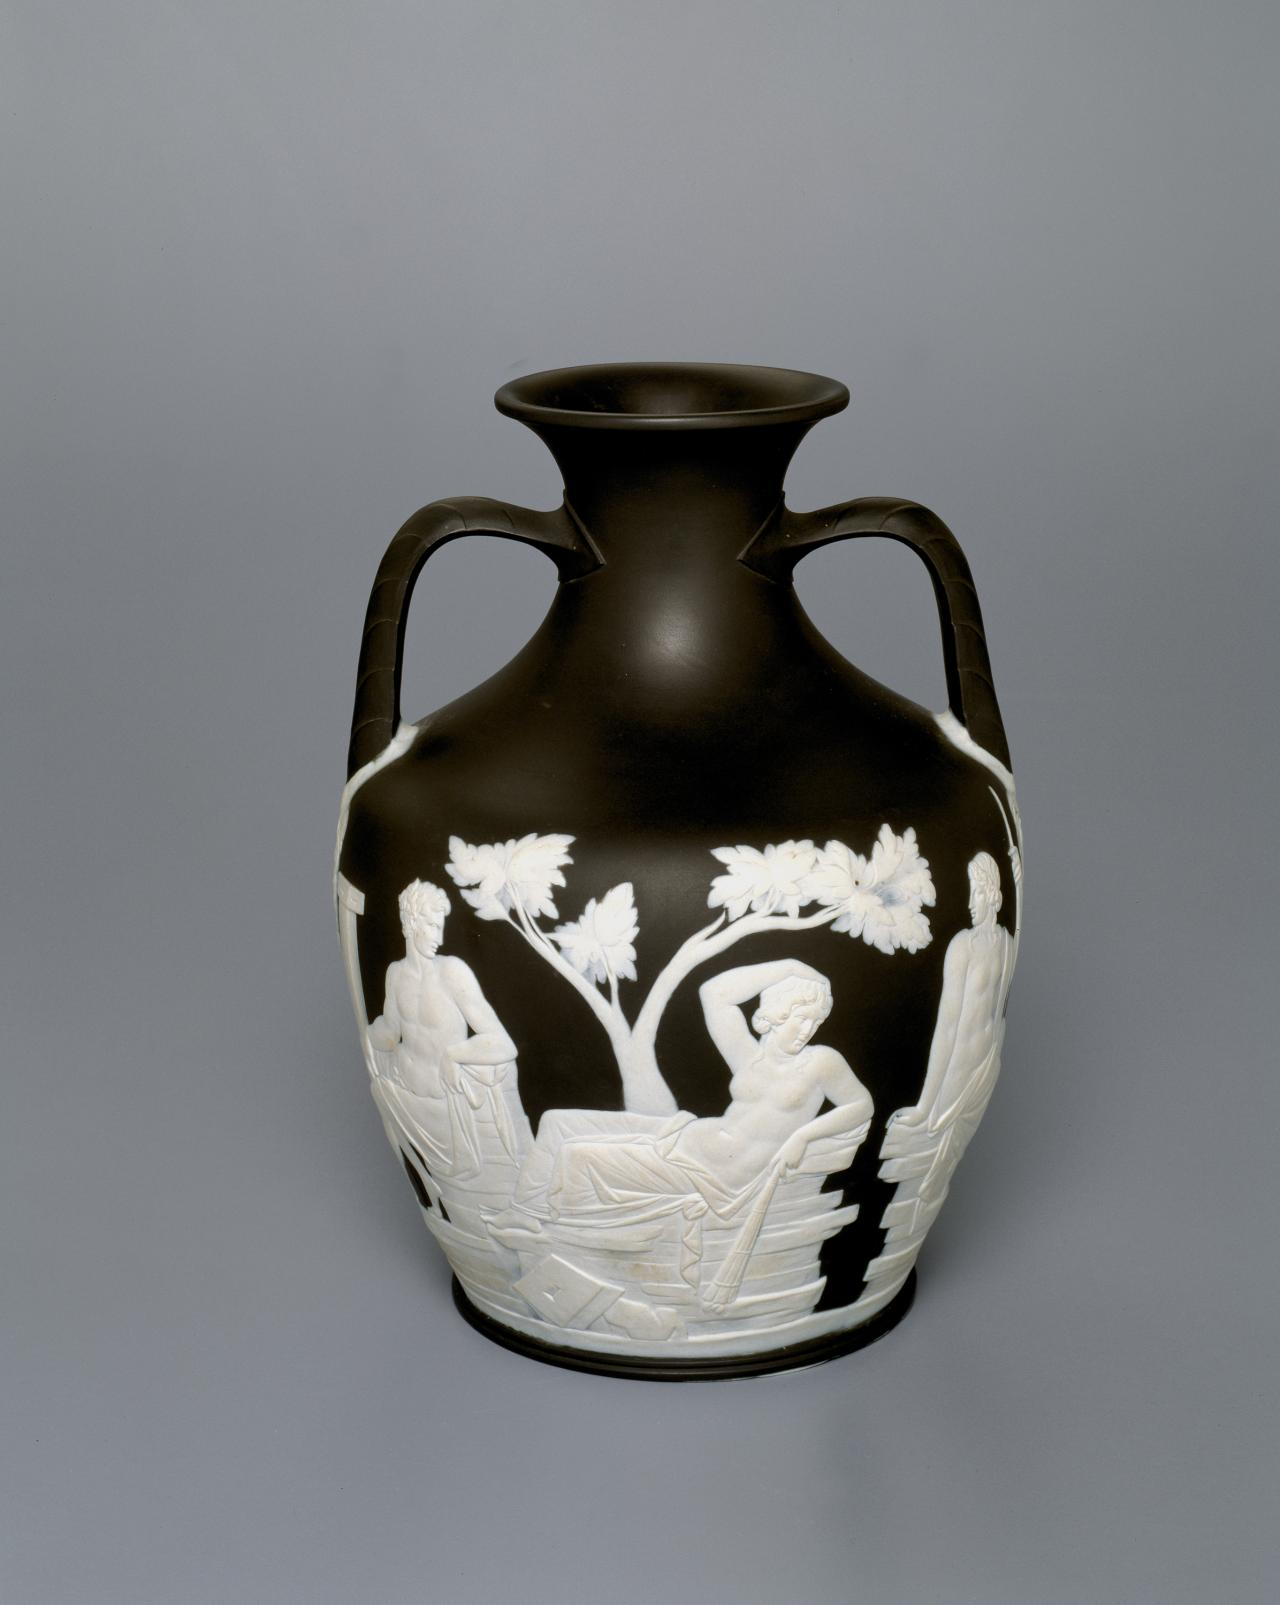 WEDGWOOD, Staffordshire (manufacturer) Portland vase and stand (c. 1790)